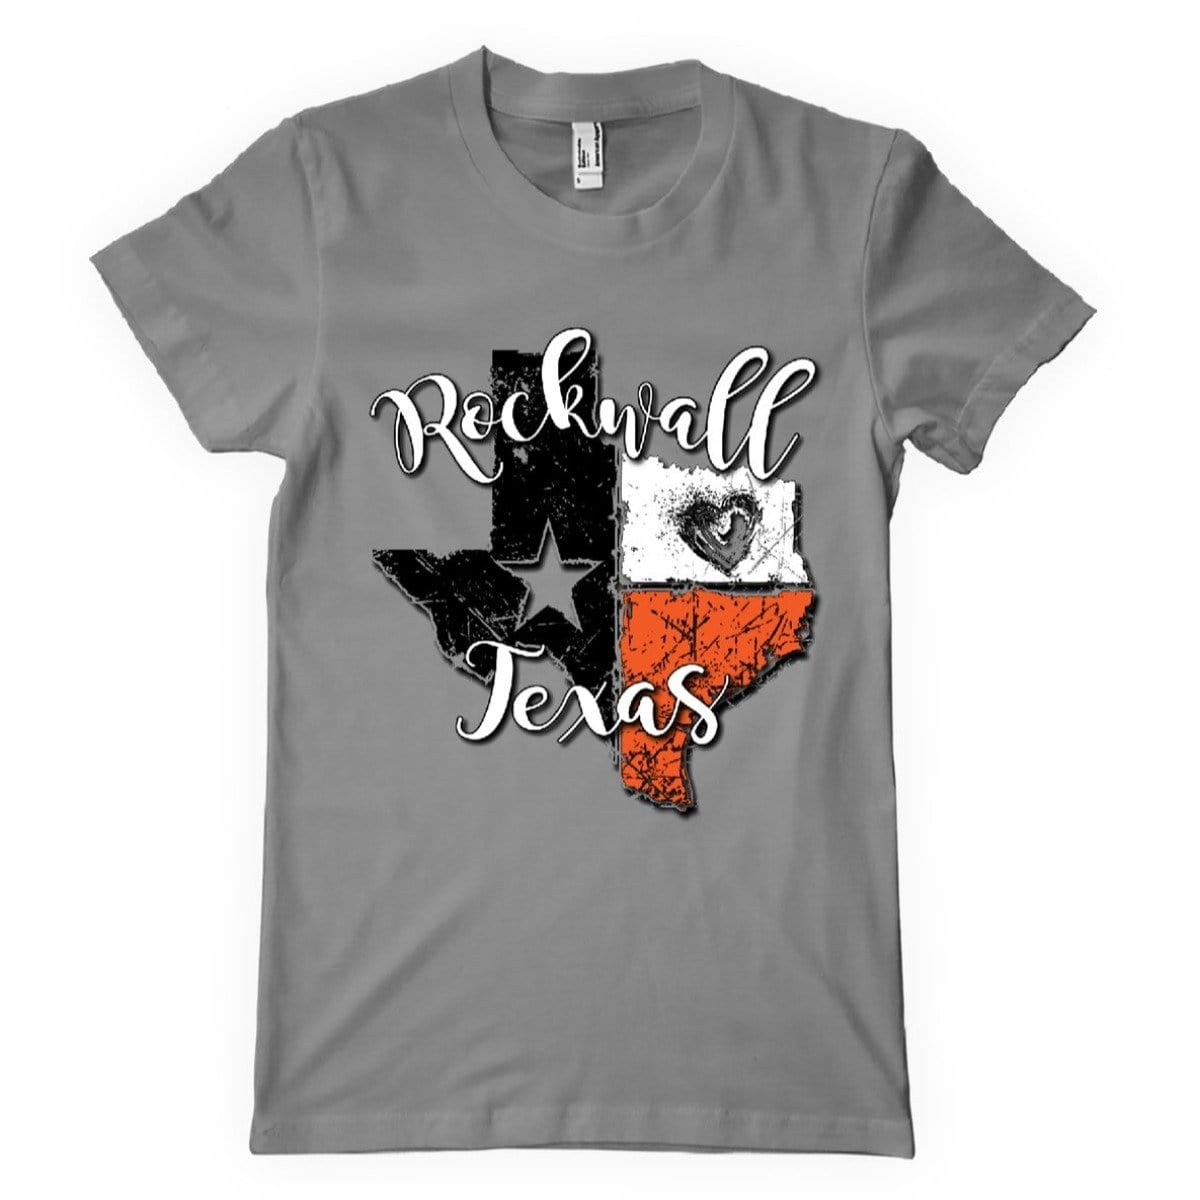 Rockwall Texas Tee